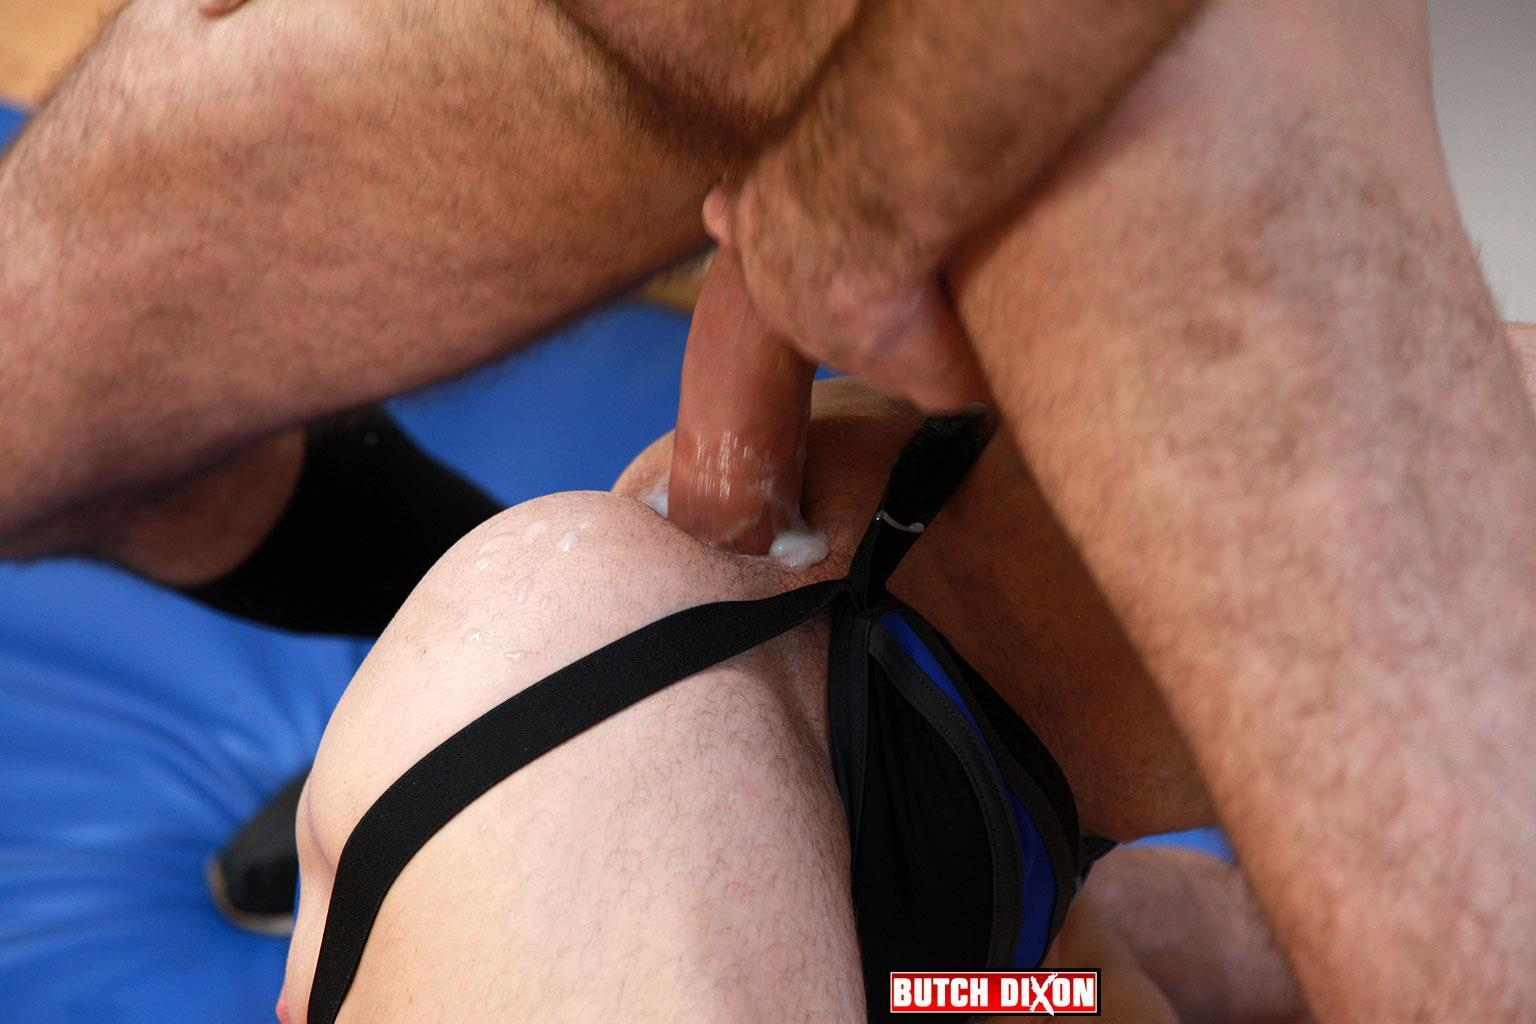 Butch Dixon Aitor Bravo and Craig Daniel Big Uncut Cock Barebacking Breeding BBBH Amateur Gay Porn 31 Craig Daniel Barebacking Aitor Bravo With His Huge Uncut Cock